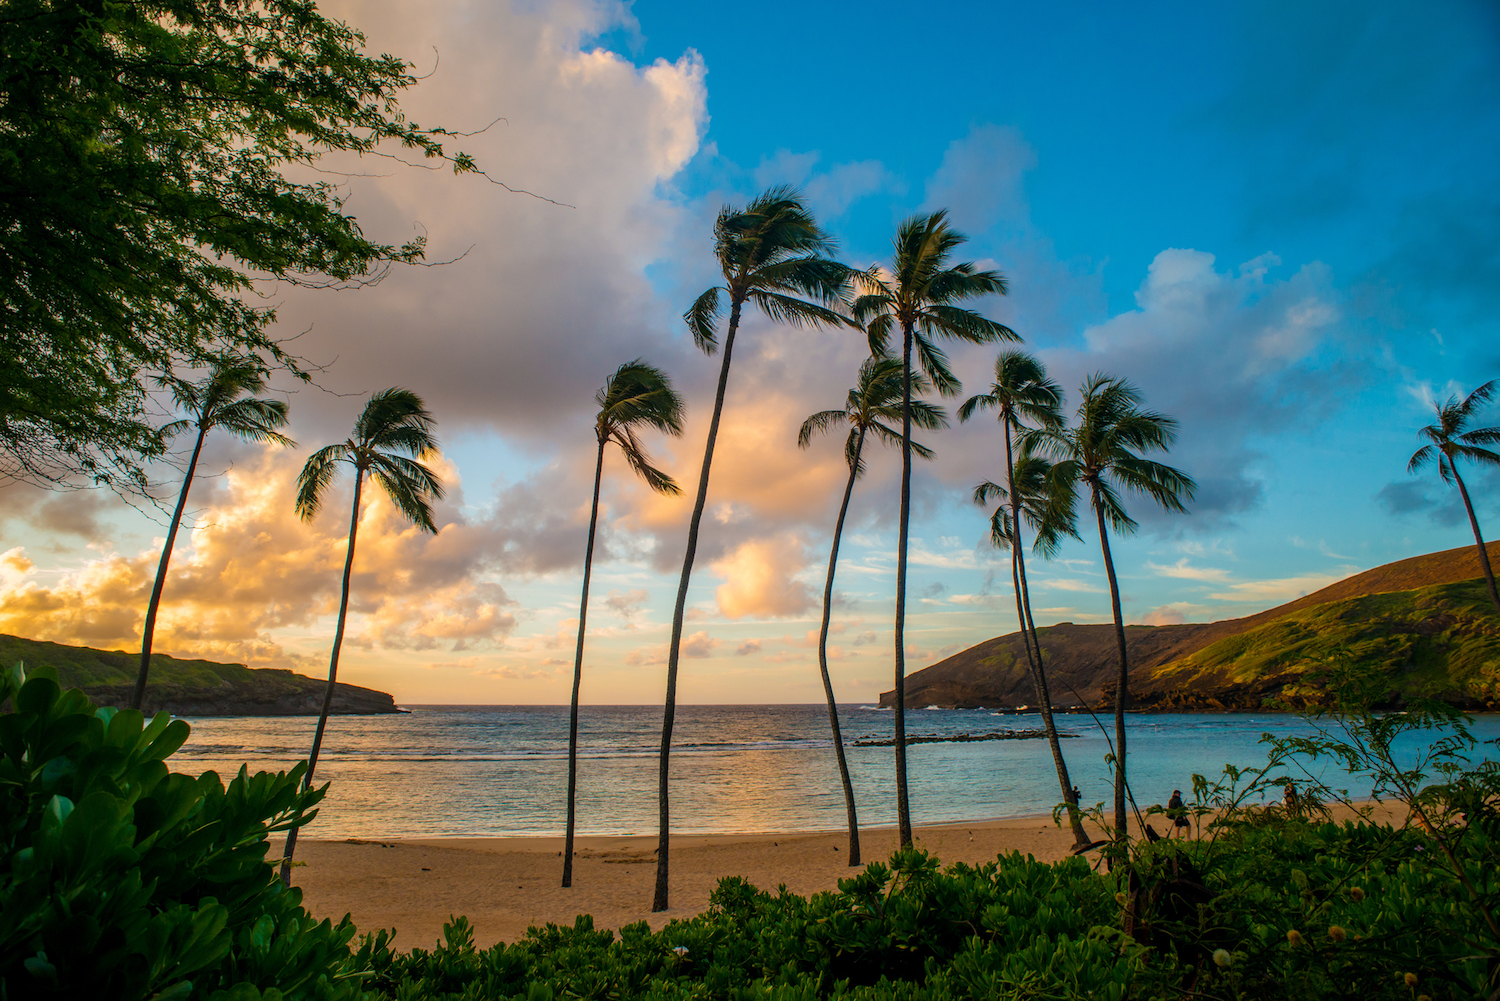 Wide angle image of palm trees at Hanauma Bay, Oahu Hawaii. Taken at sunrise on a beautiful Spring morning.